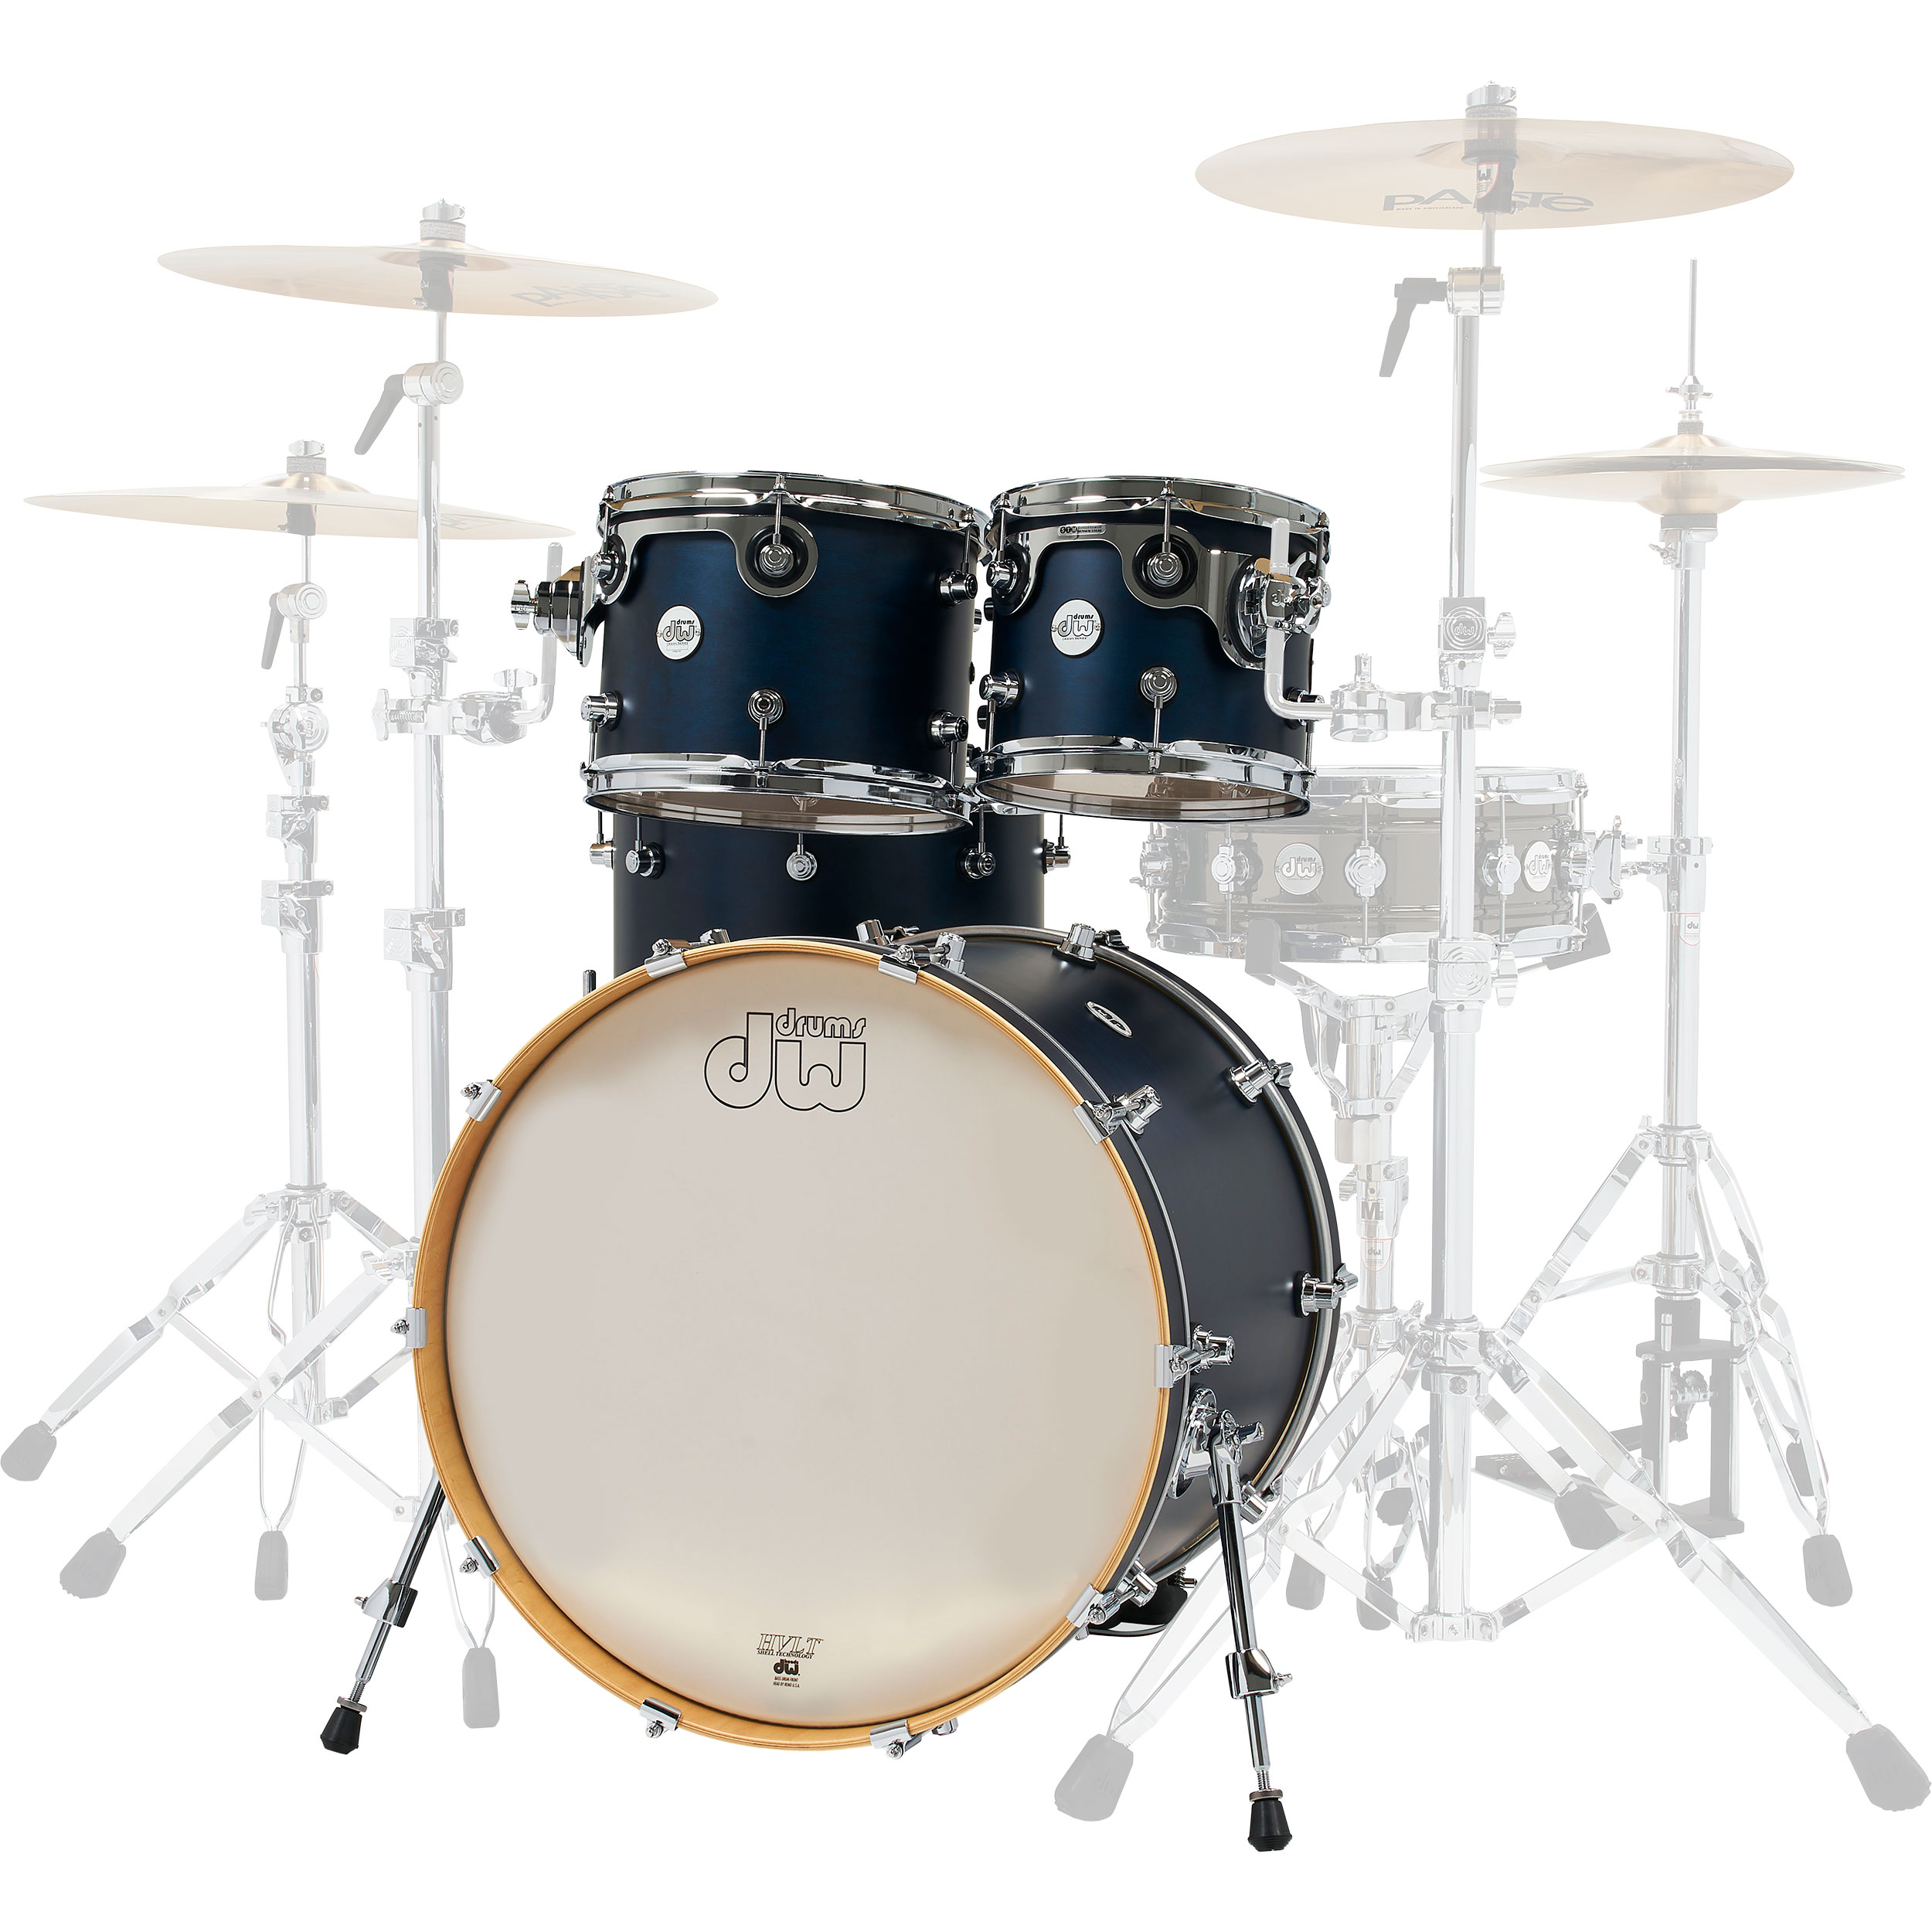 "DW Limited Edition Design Series 4-Piece Drum Set Shell Pack in Midnight Blue (22"" Bass, 10/12/16"" Toms)"